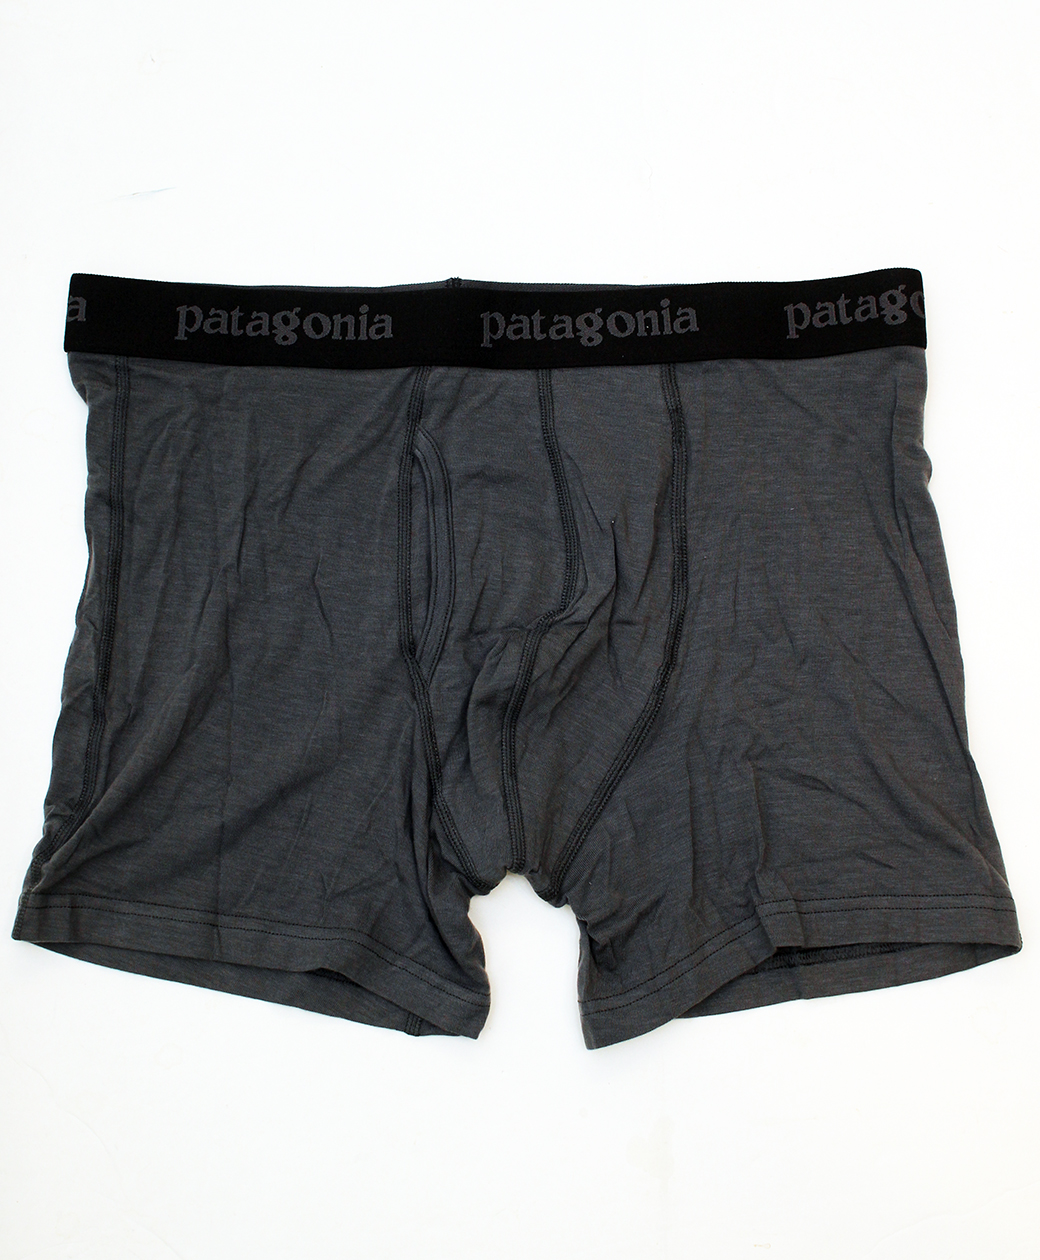 patagonia M's Essential Boxer Briefs 3 in(FGE)